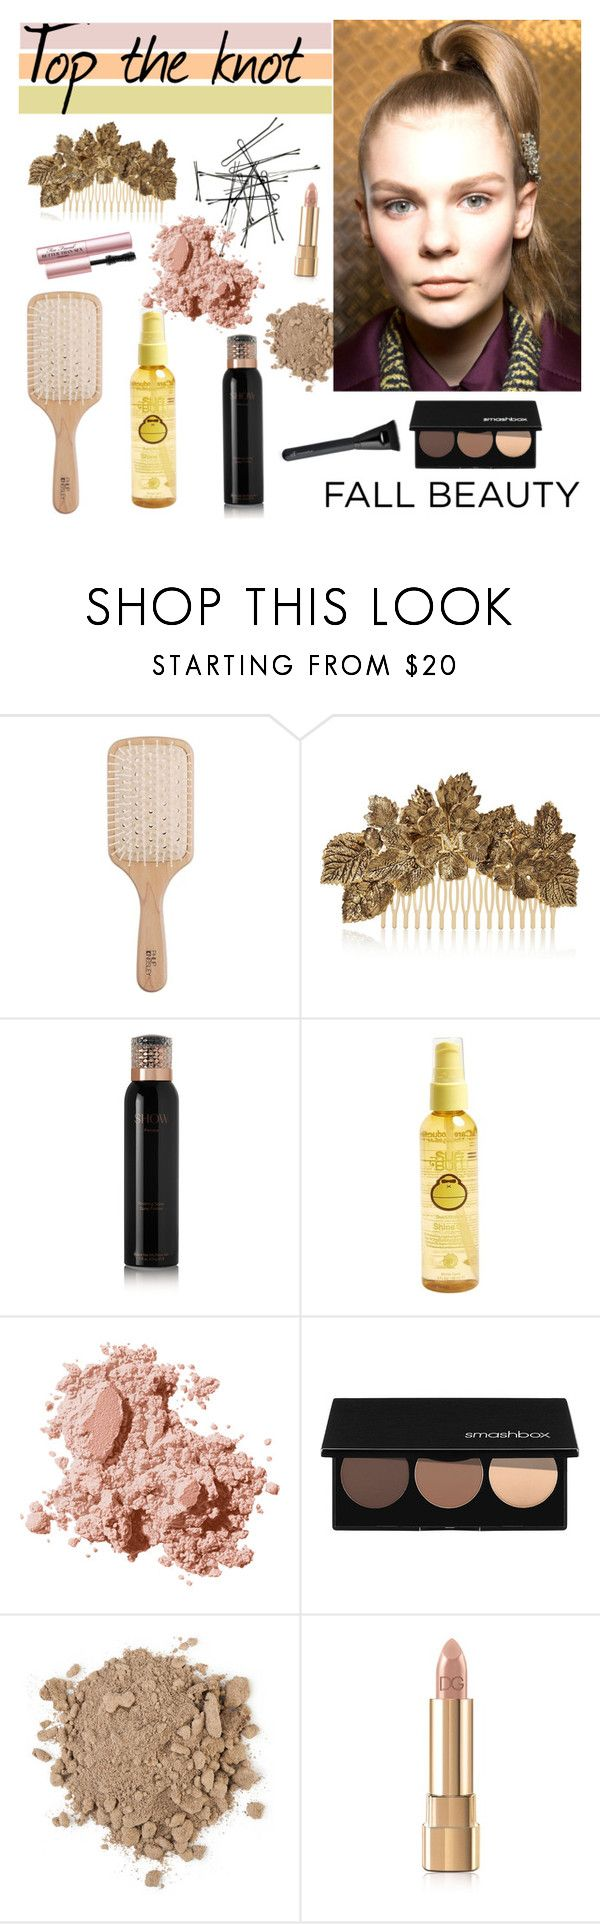 """""""Fall hair 2015"""" by tauriel25 ❤ liked on Polyvore featuring beauty, Philip Kingsley, Maison Michel, Show Beauty, Sun Bum, Bobbi Brown Cosmetics, Smashbox, Dolce&Gabbana, Too Faced Cosmetics and hairstyle"""